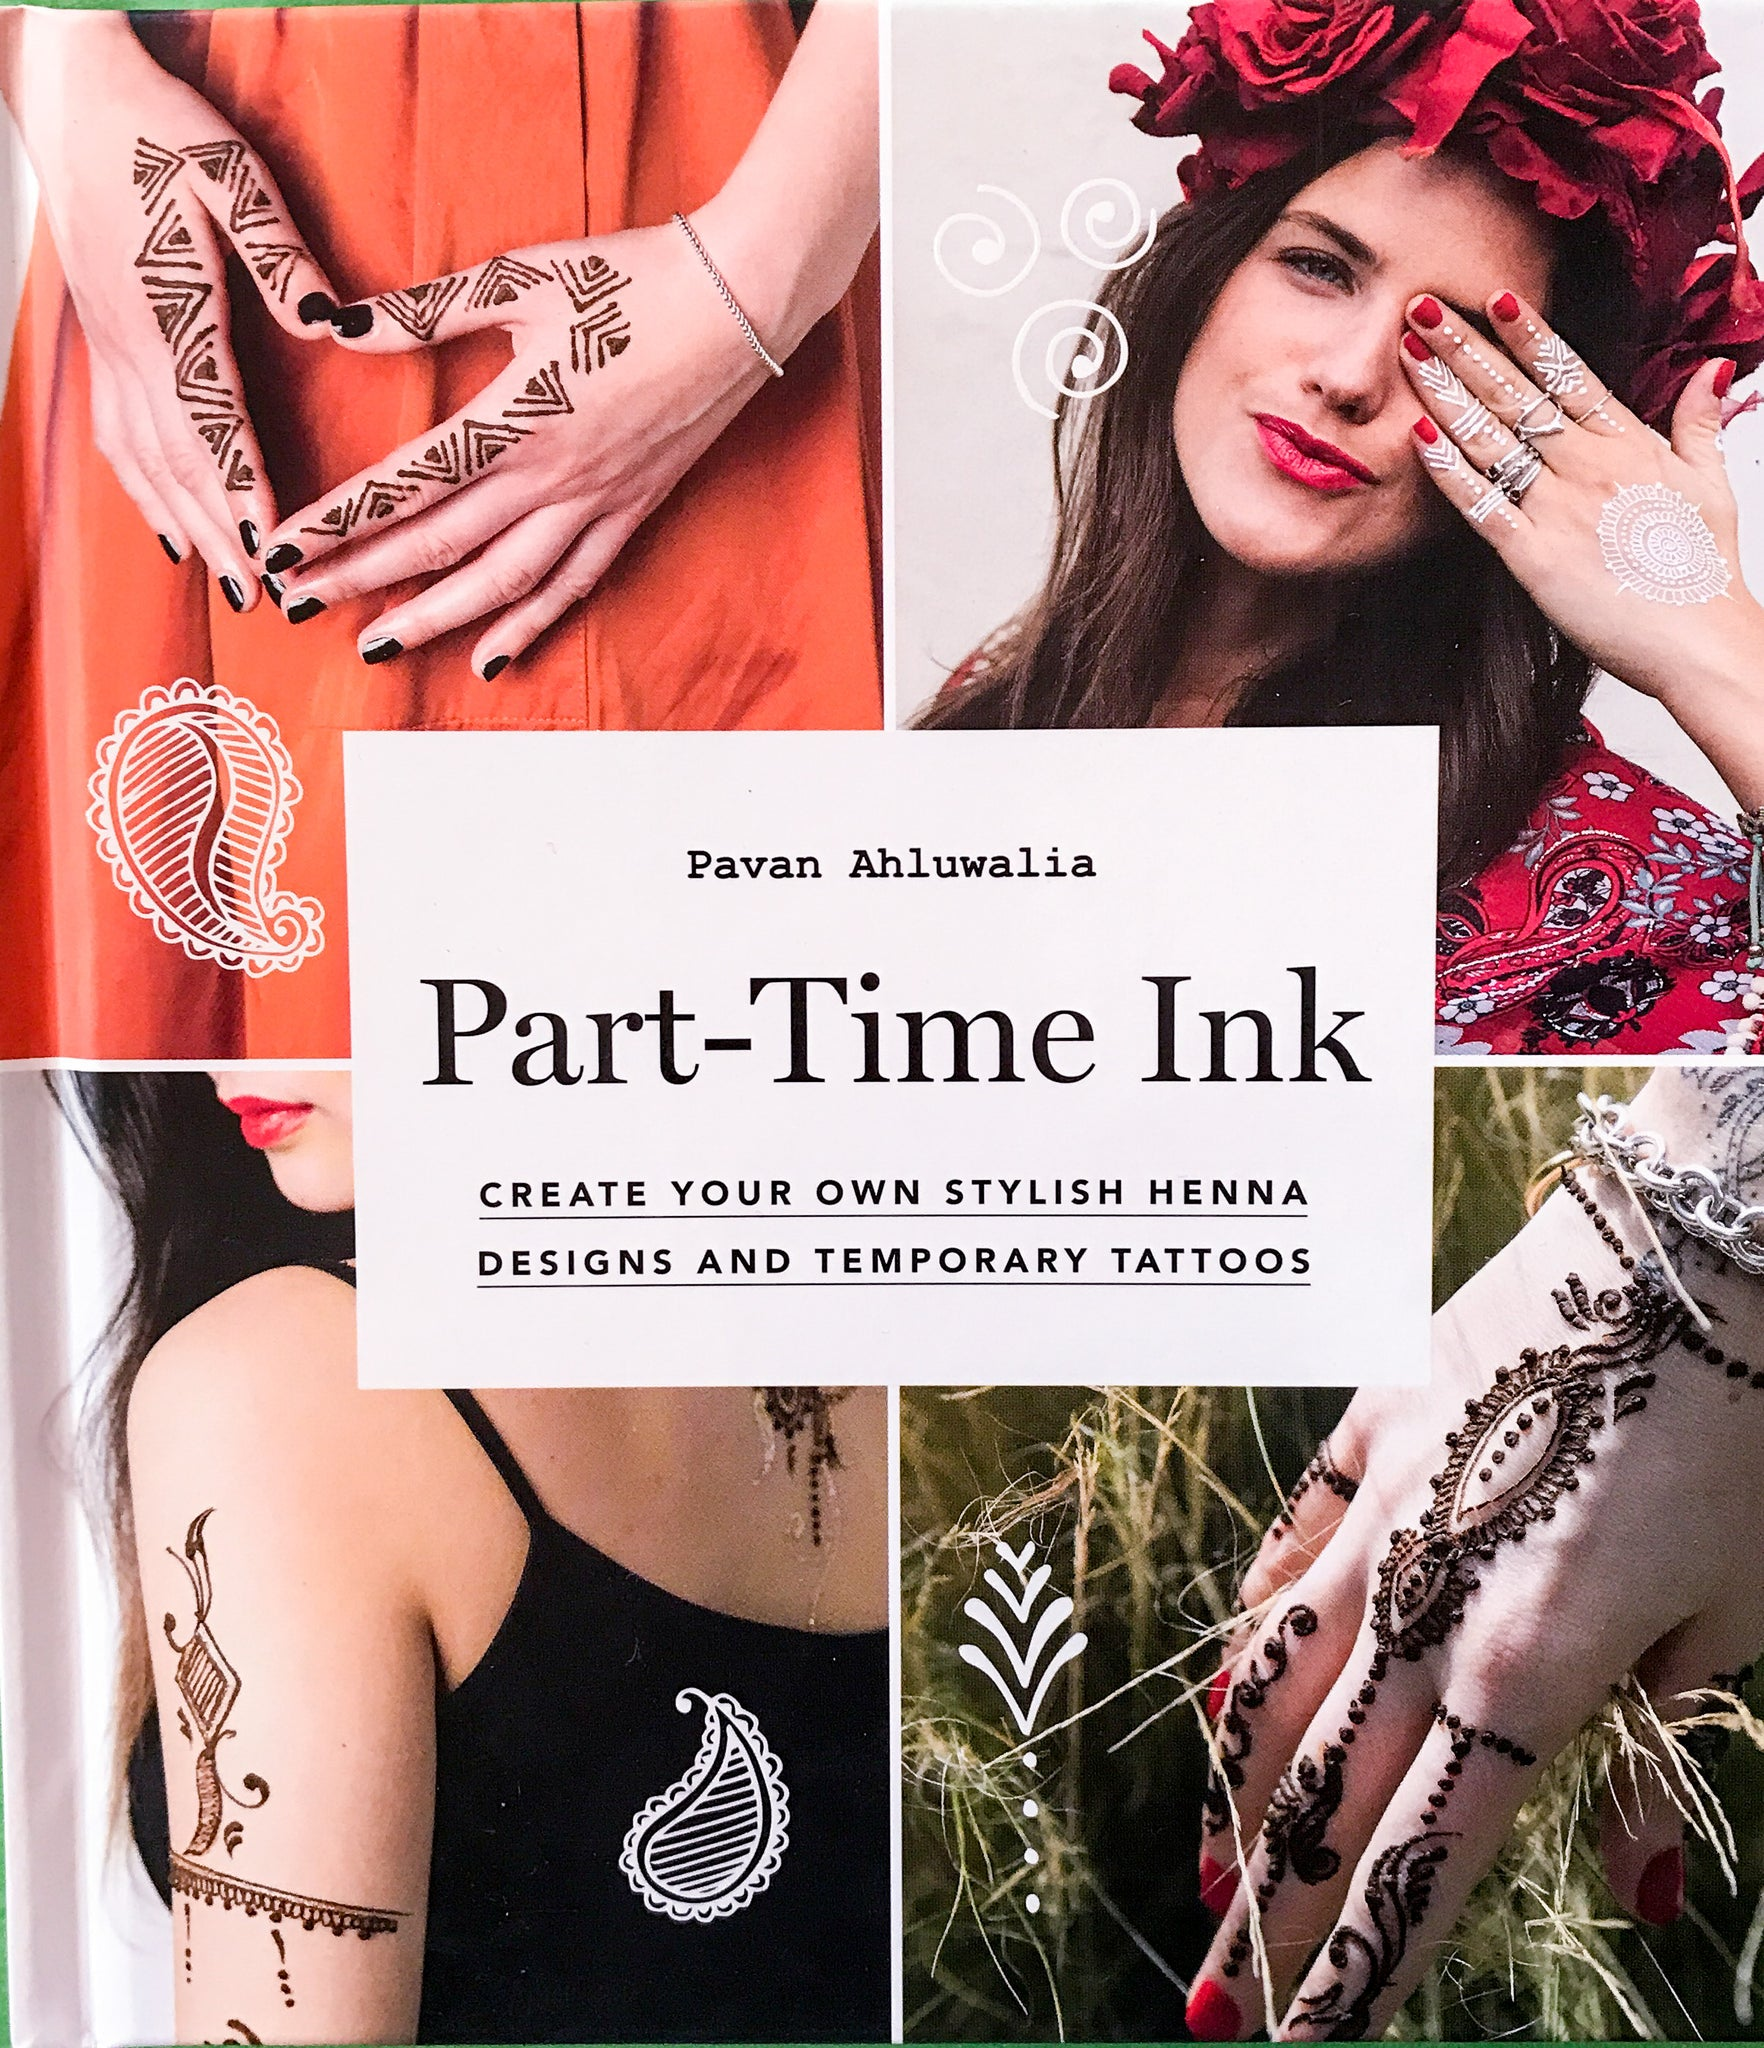 """Part-time Ink"" by Pavan Ahluwalia"